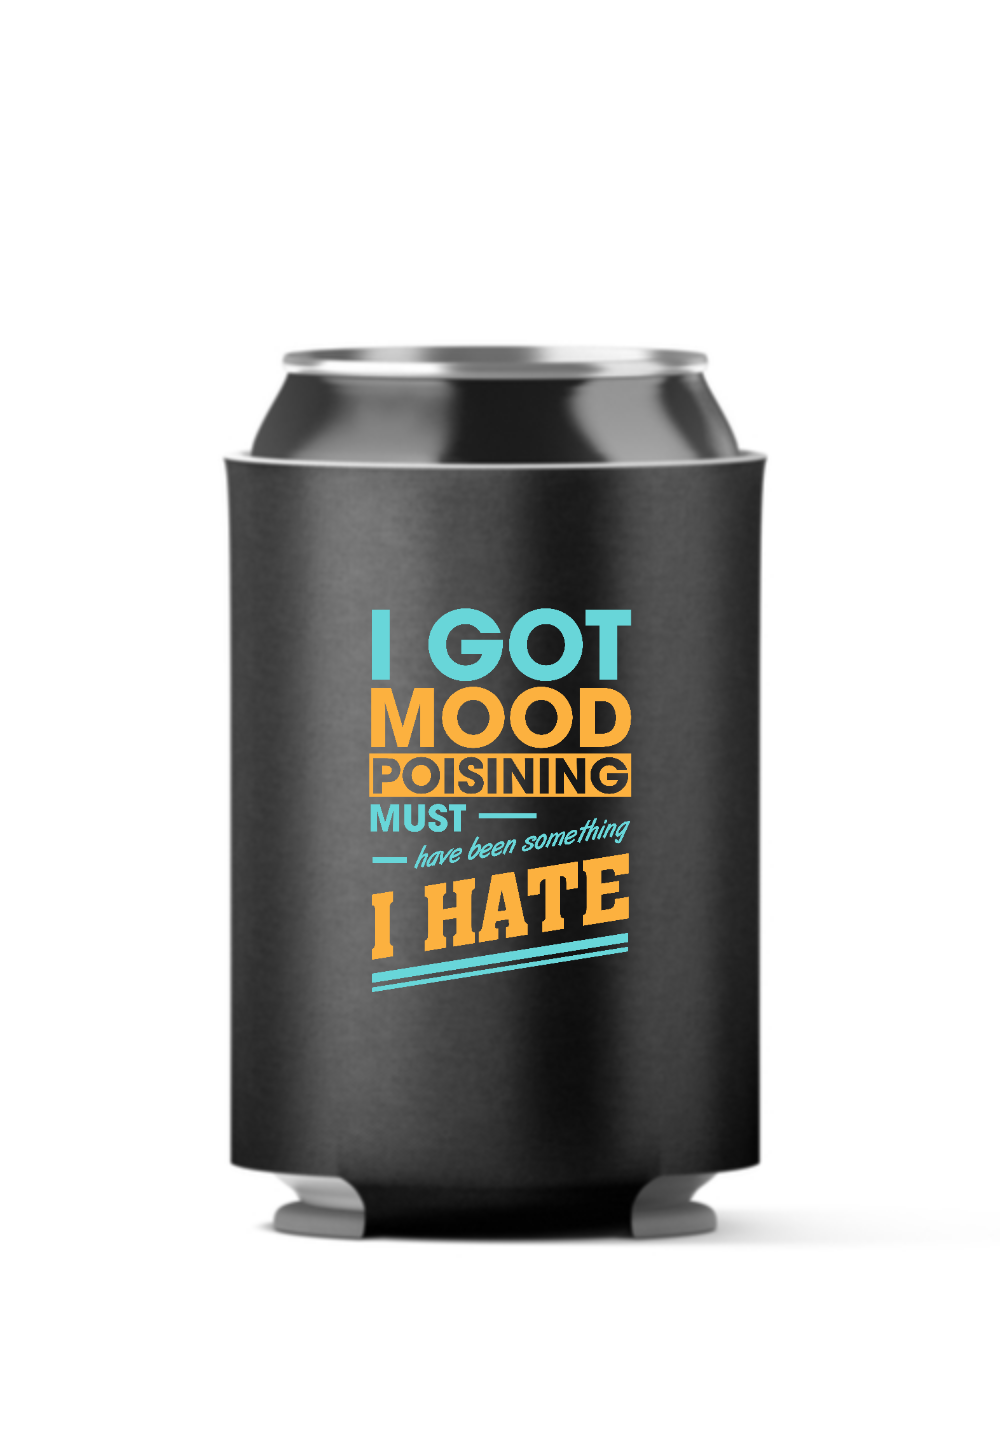 Got Mood Poisoning Must be Something I hate Funny 4-Pack Can Coolers